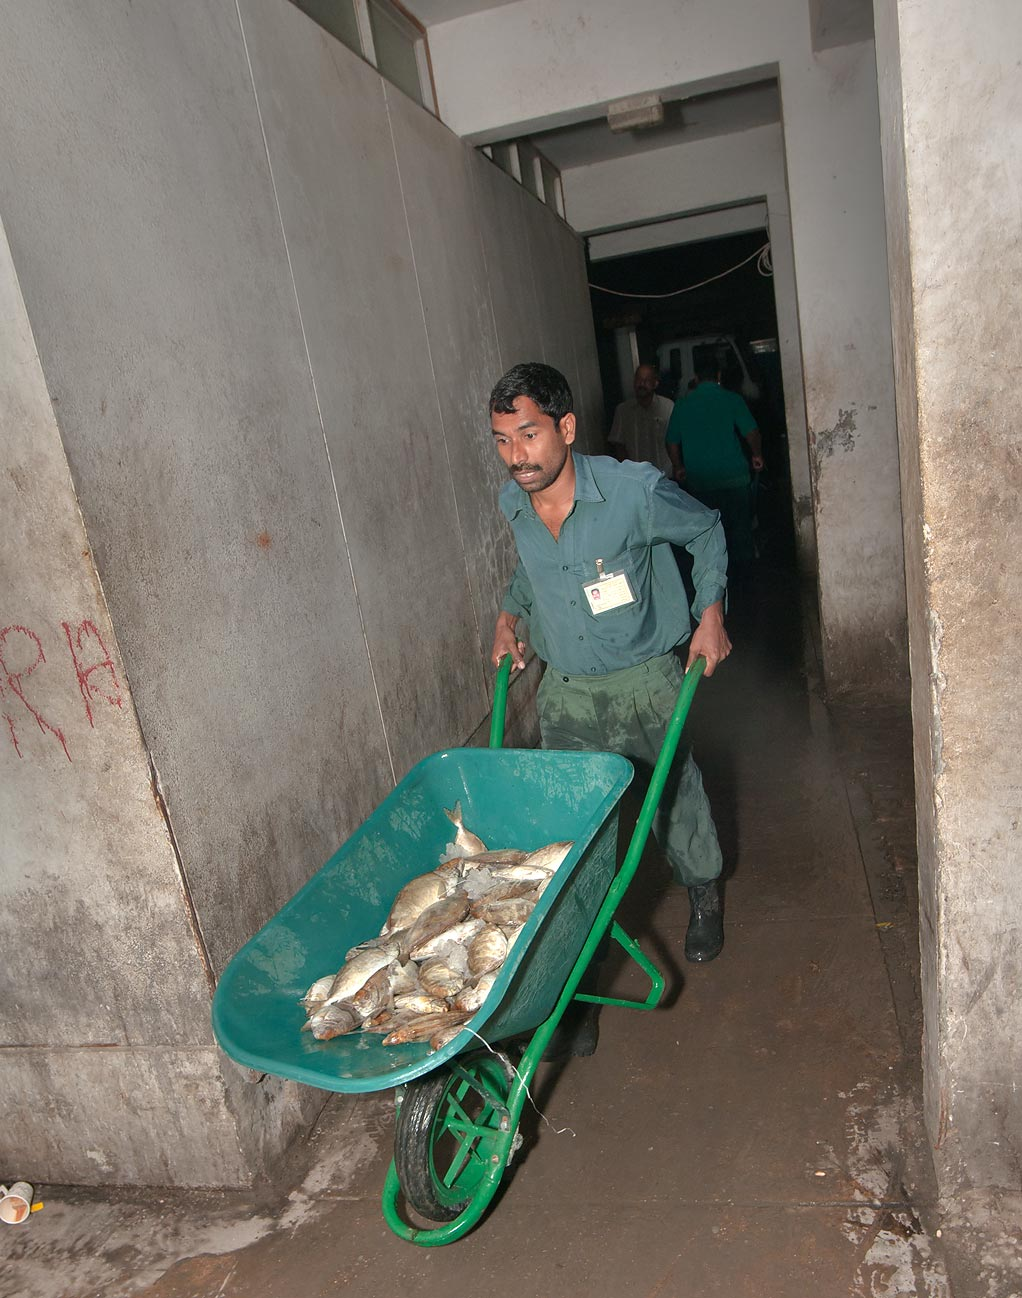 Worker with a cart carrying fish in wholesale Central Fish Market. Doha, Qatar